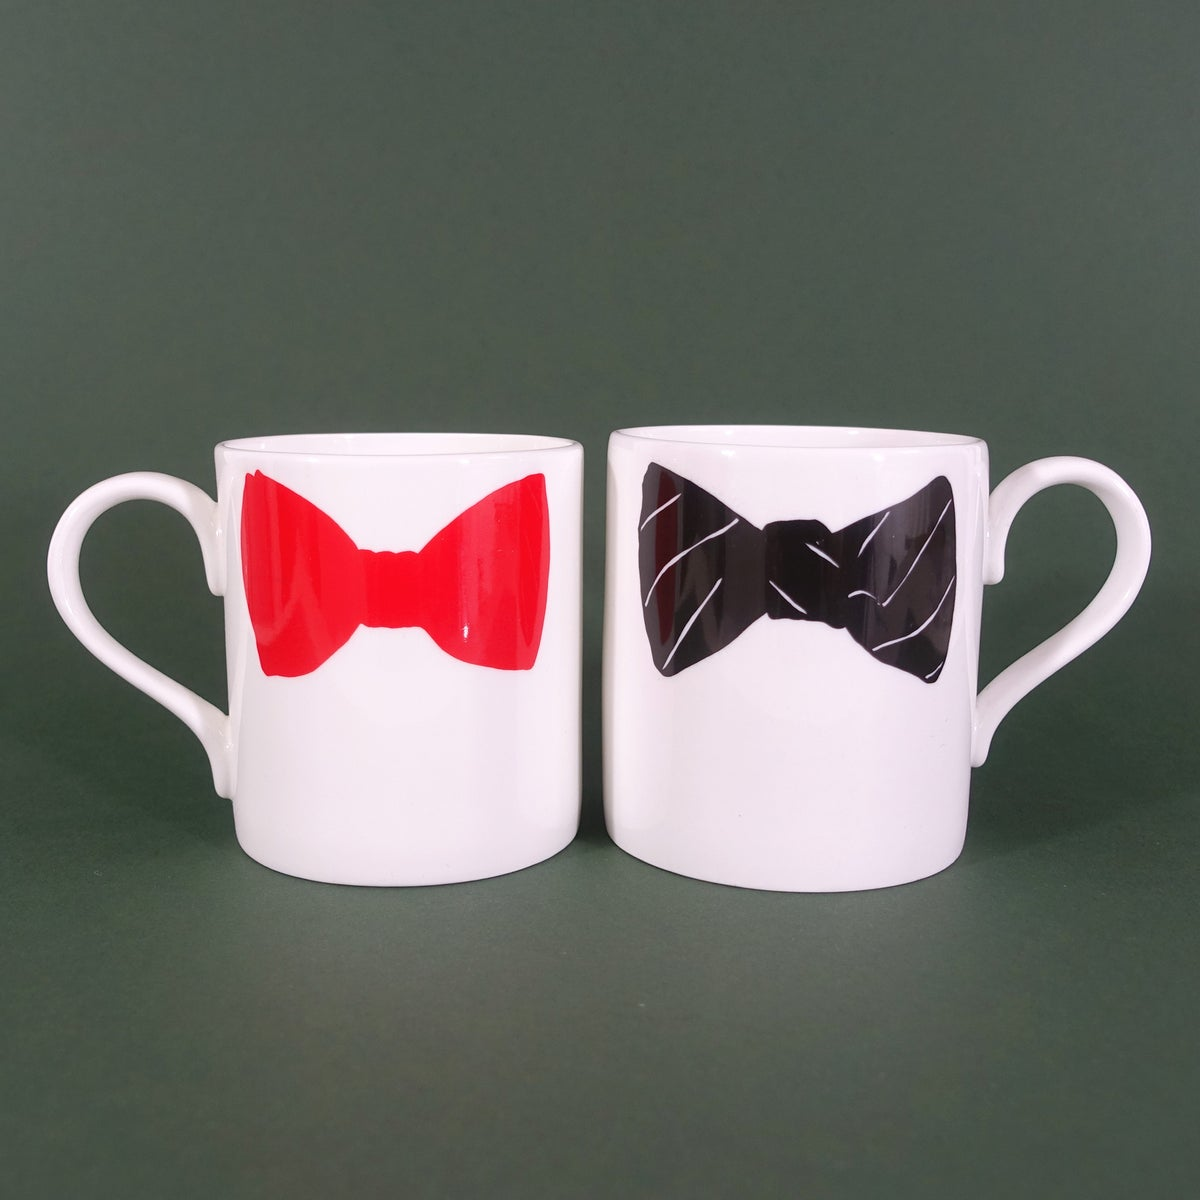 Image of Original Bow Tie Mug - Set of Two (Red & Black)